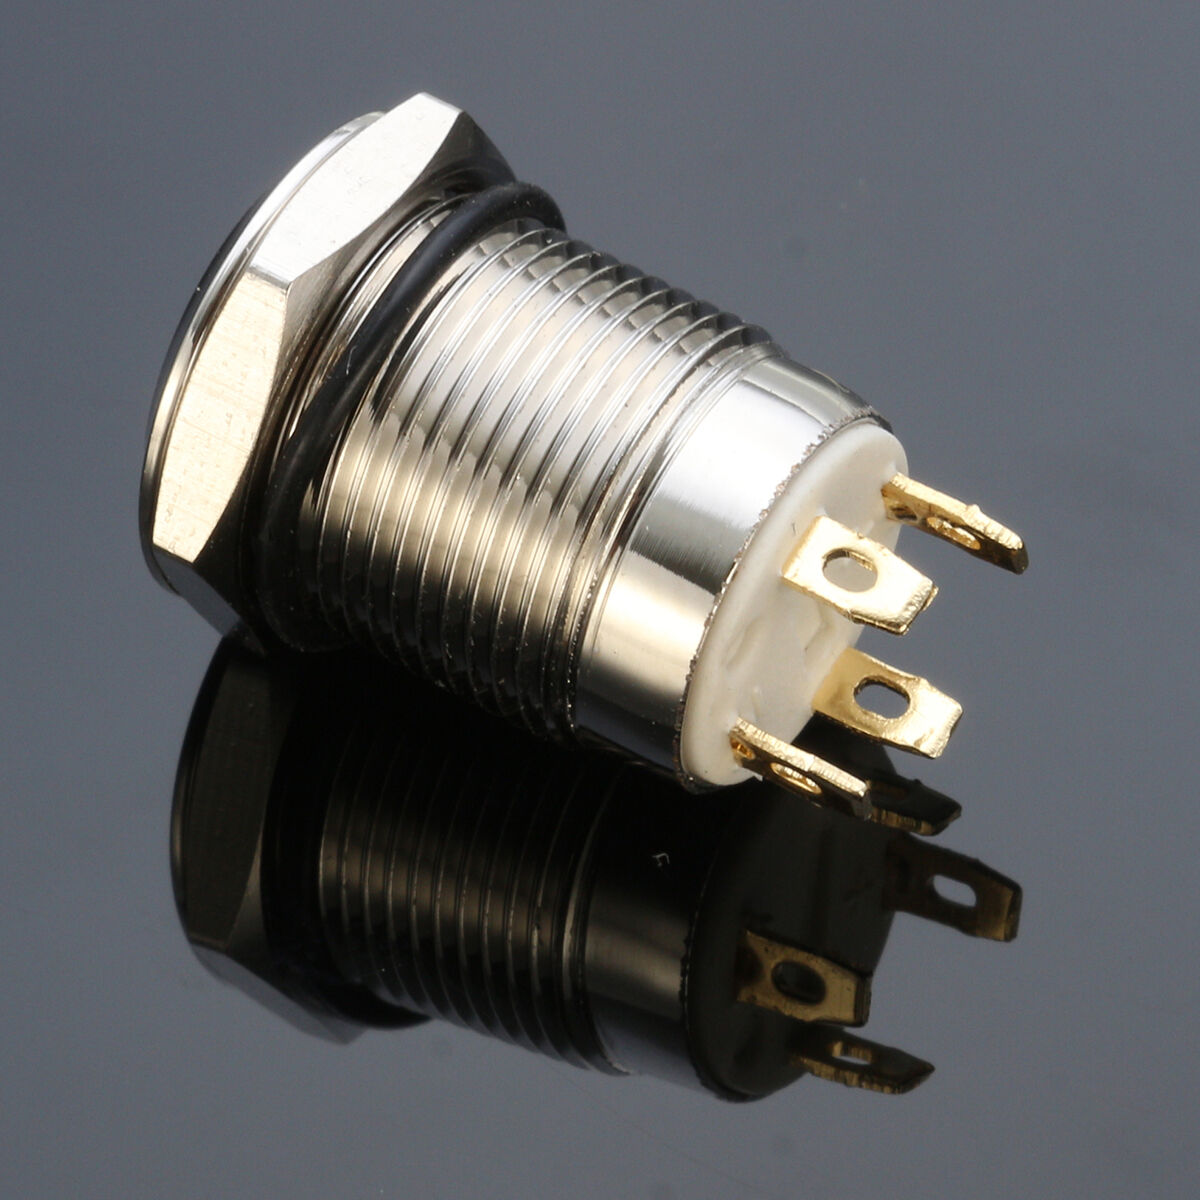 hight resolution of 12v chrome 4 pin led light 12mm metal push button momentary switch waterproof ma